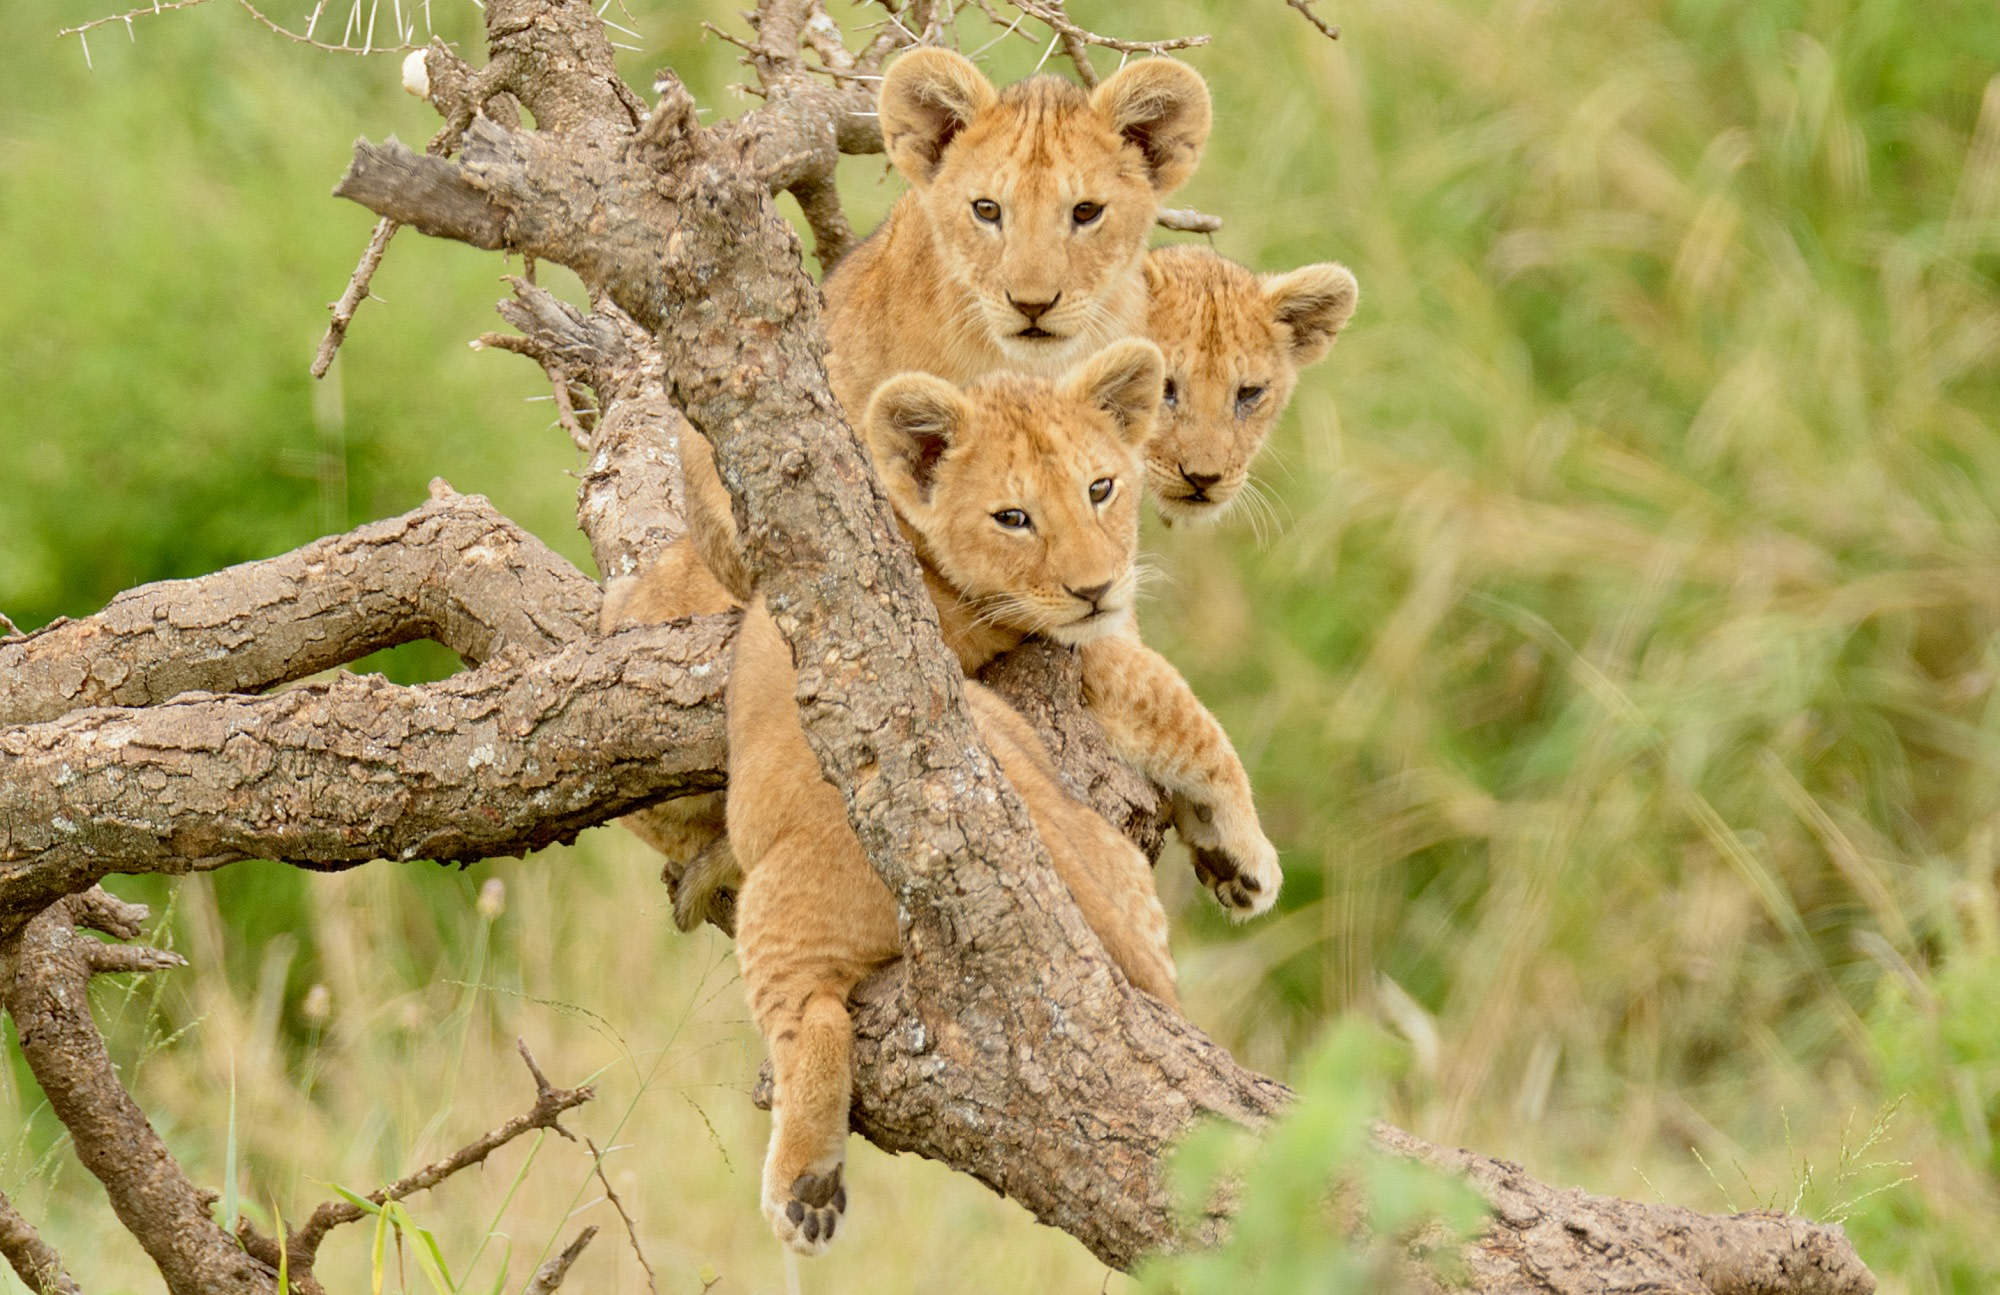 妖娆 Travels 非洲之旅 - Lion King Safari - a group of lion cubs hanging out in a tree